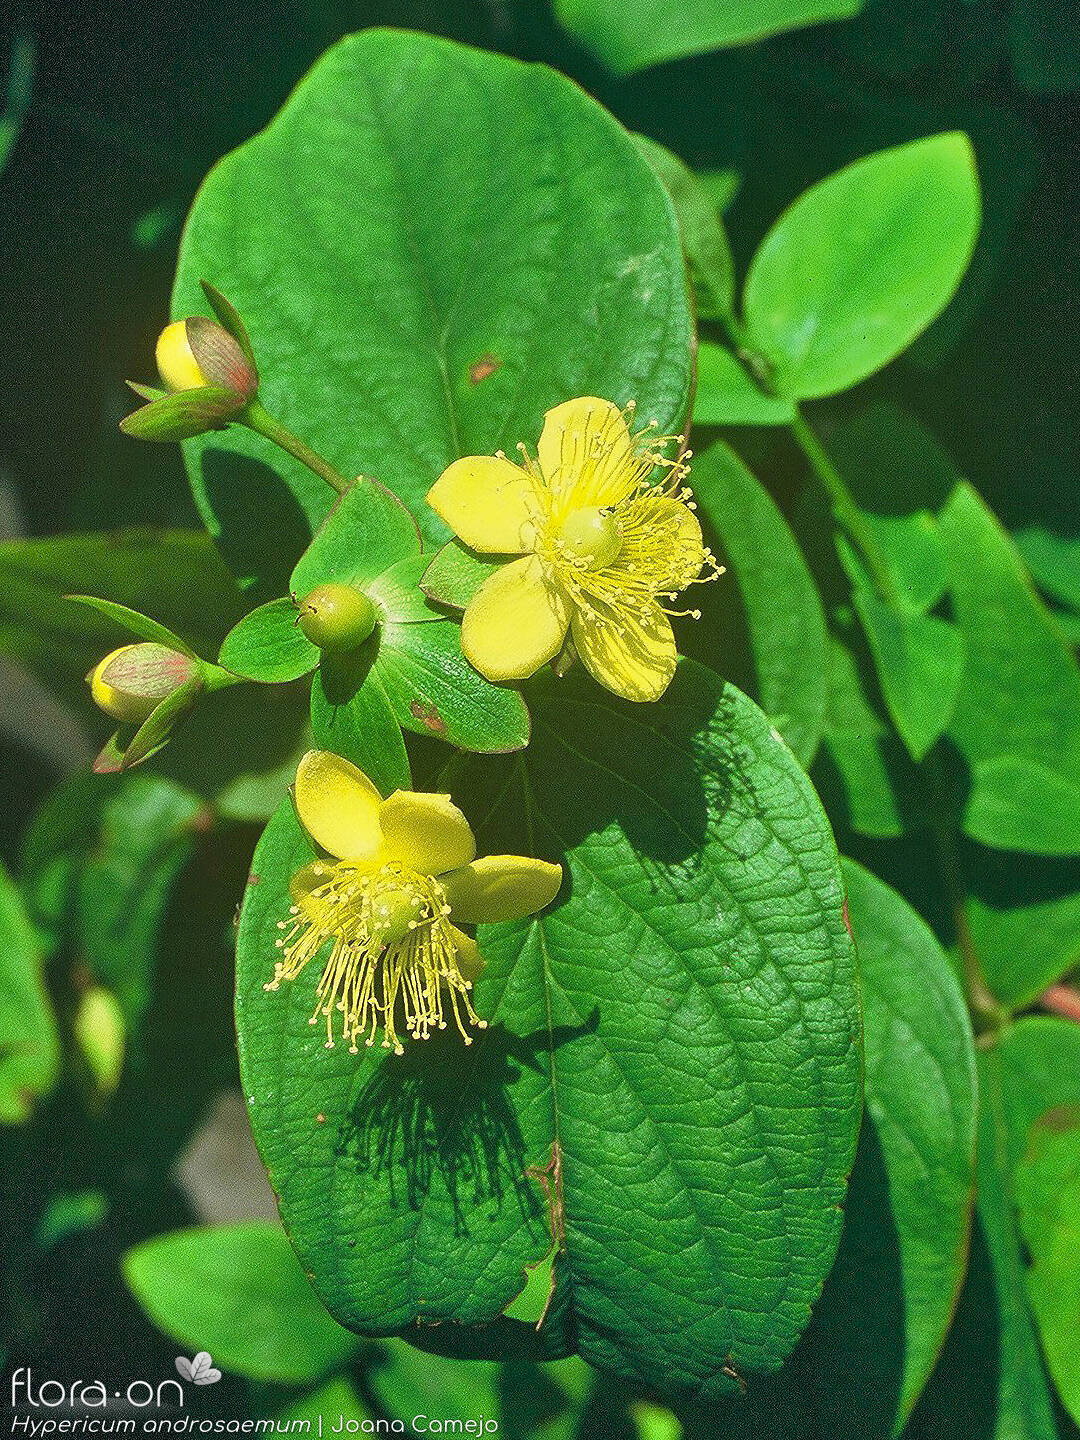 Hypericum androsaemum - Flor (geral) | Joana Camejo; CC BY-NC 4.0